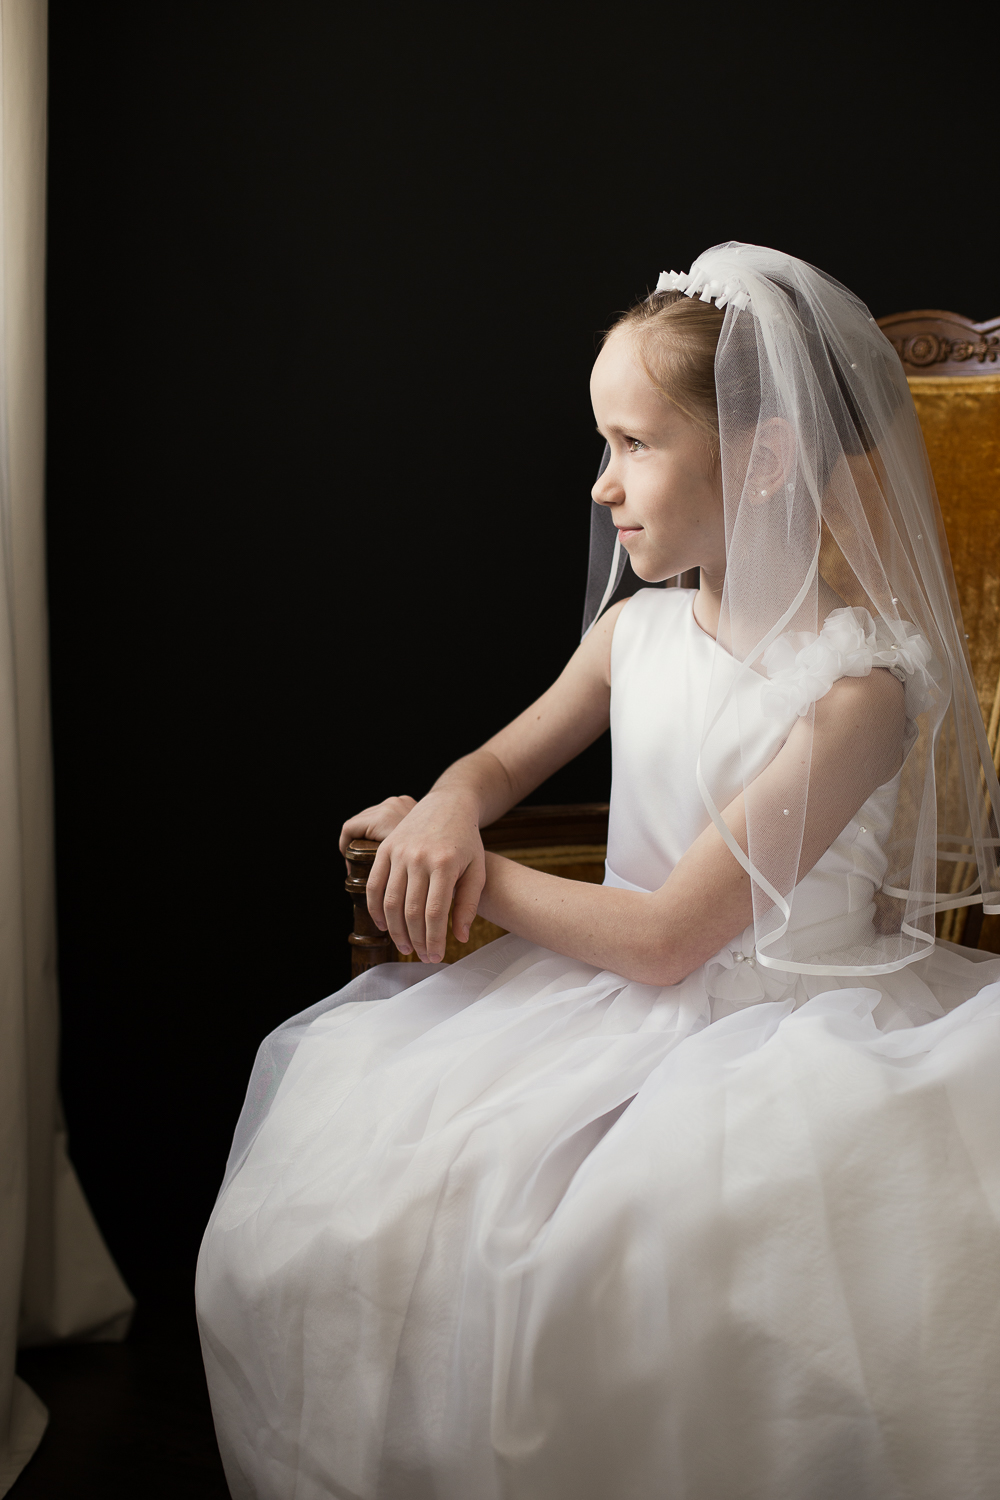 Portrait of a girl in a communion dress and veil by a window in a gold chair